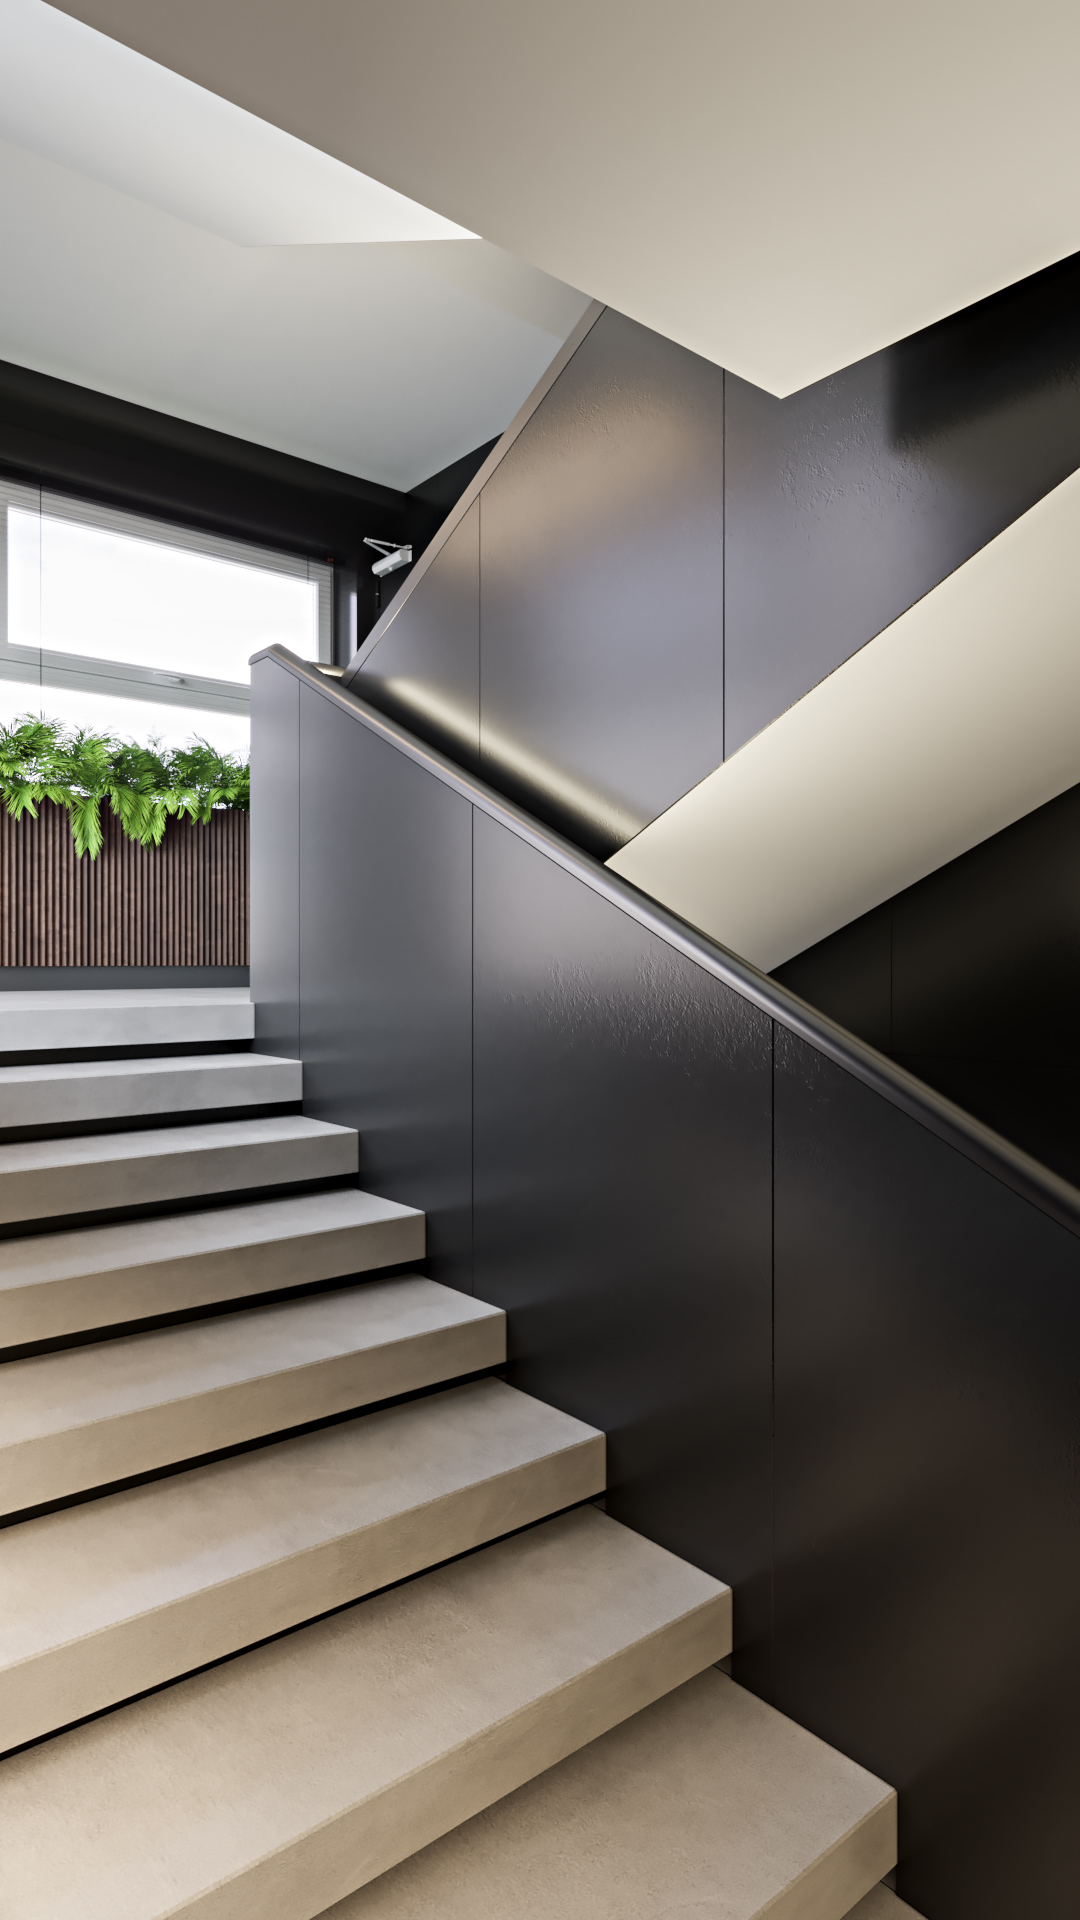 Stairs_SM_View03